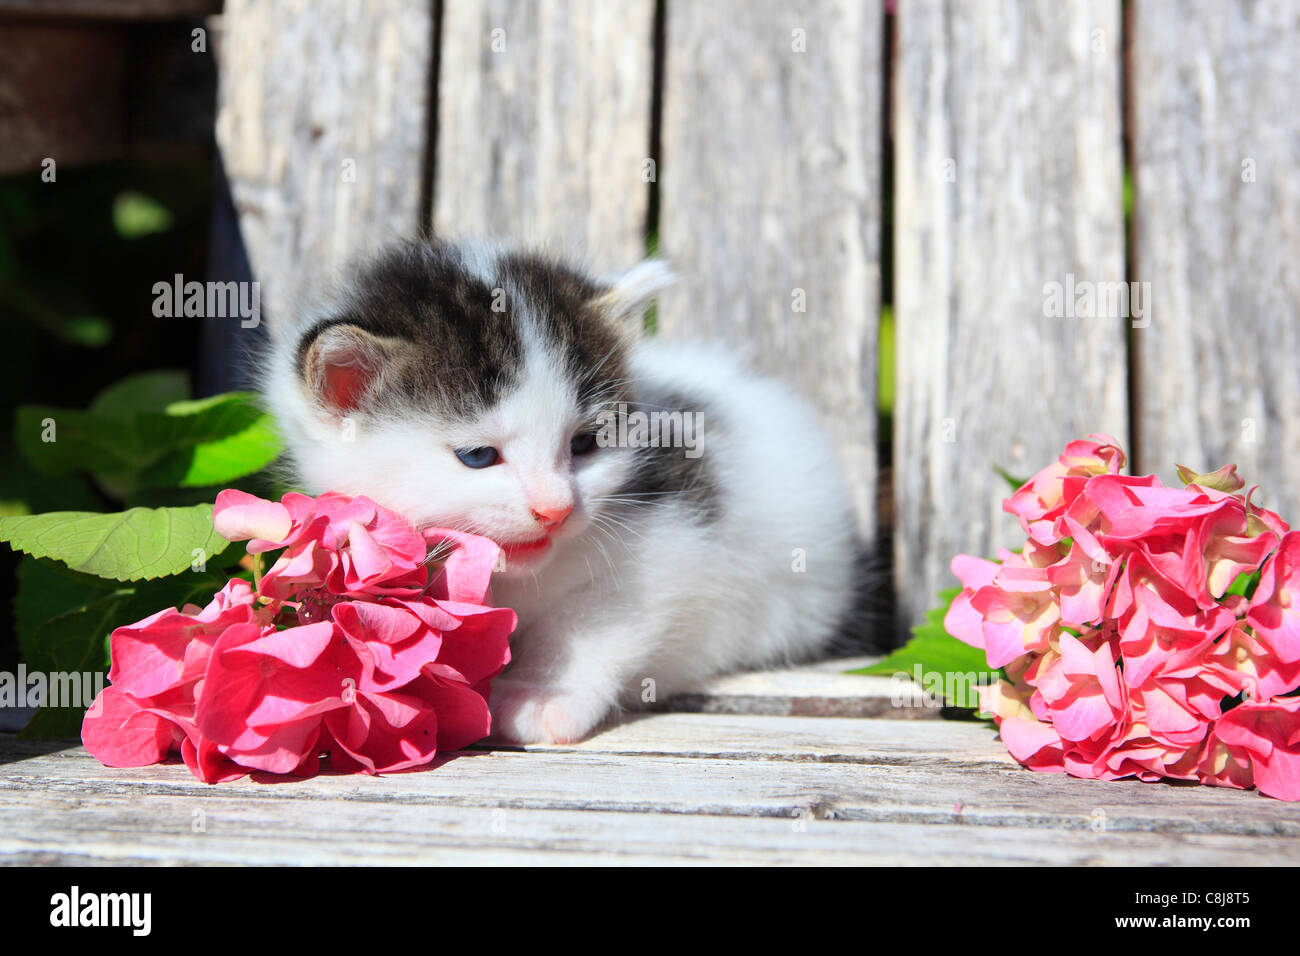 3 weeks, flower, flowers, garden, house, home, Animal, domestic animal, pet, young, cat, kitten, outdoors, outside, - Stock Image